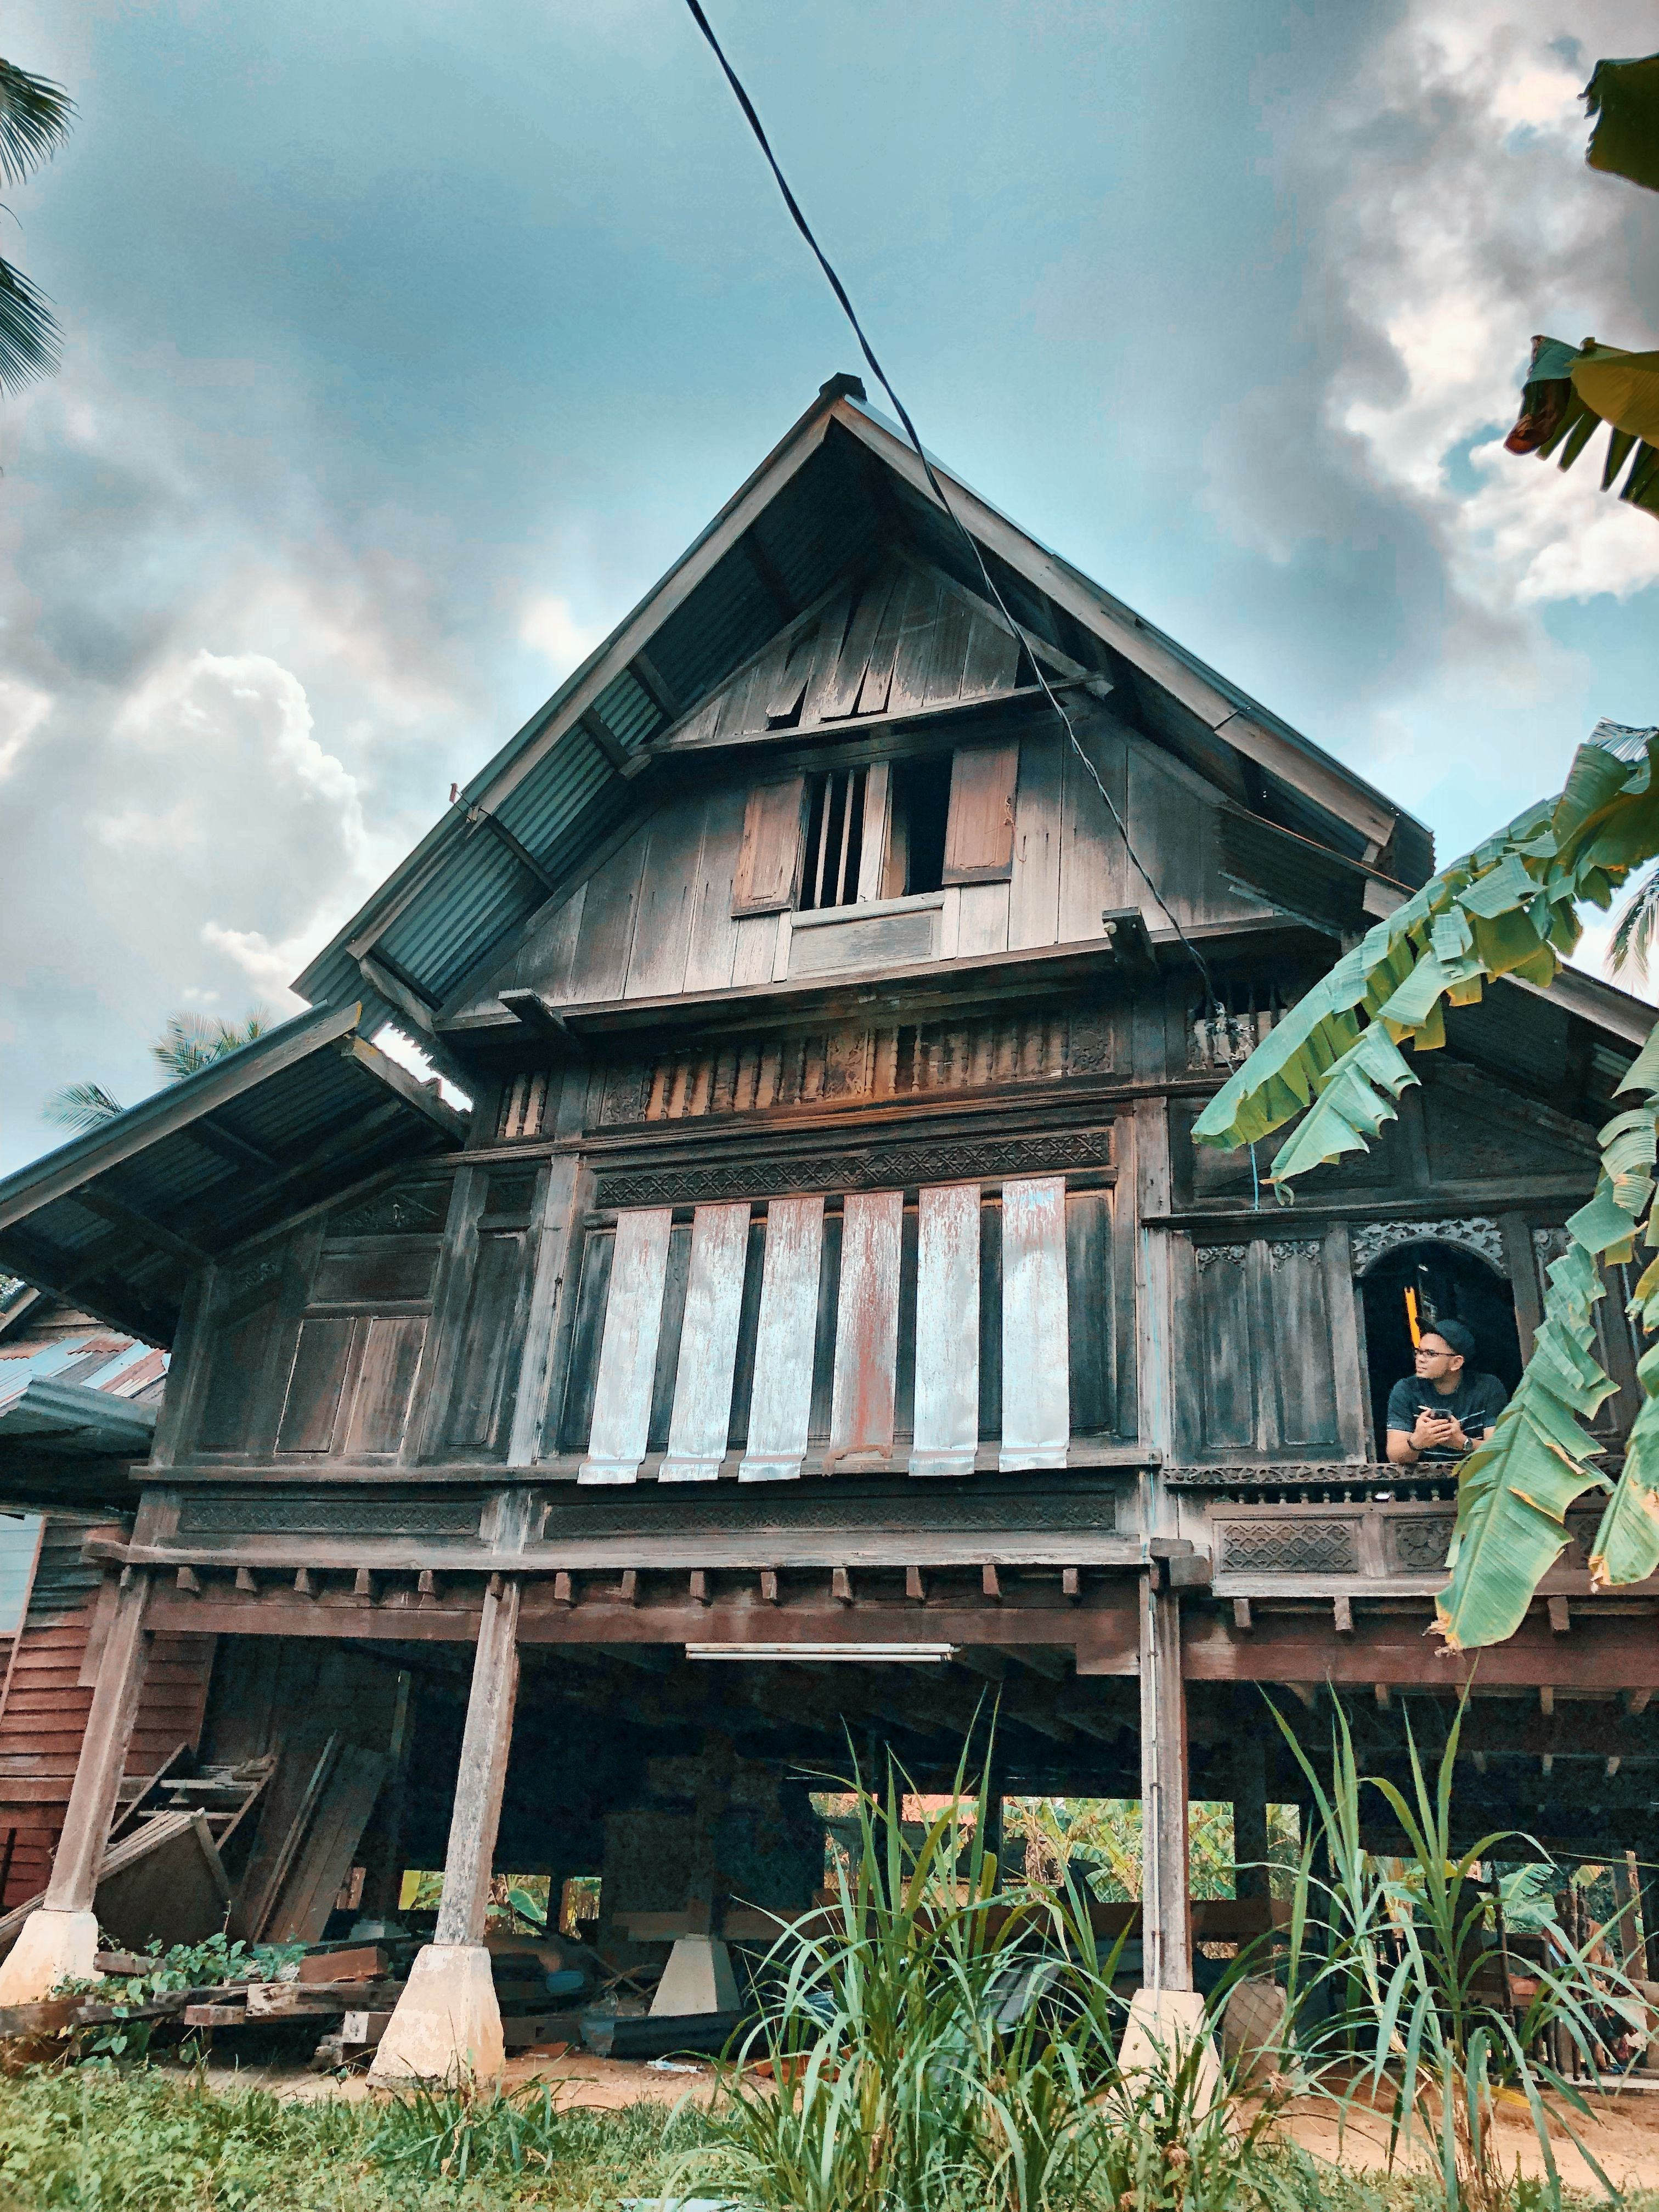 Idea by roy terachi on RUMAH KAMPUNG MELAYU House styles